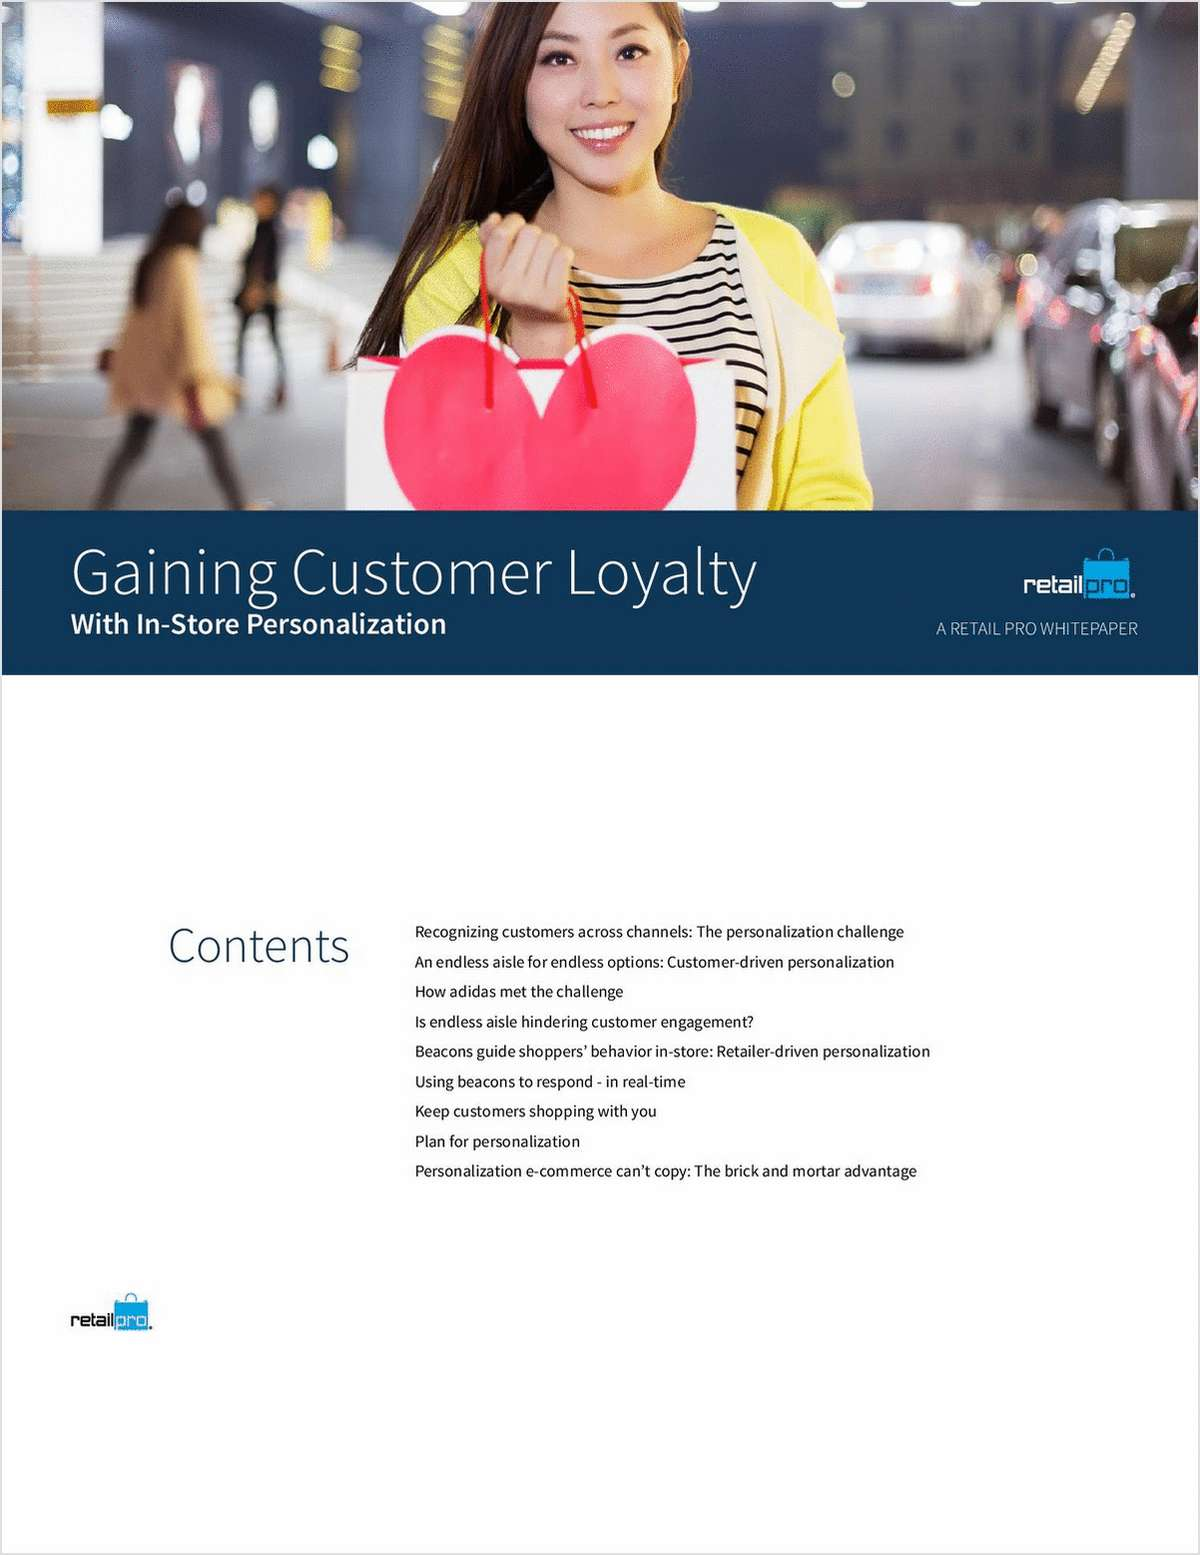 Gaining Customer Loyalty with Personalization